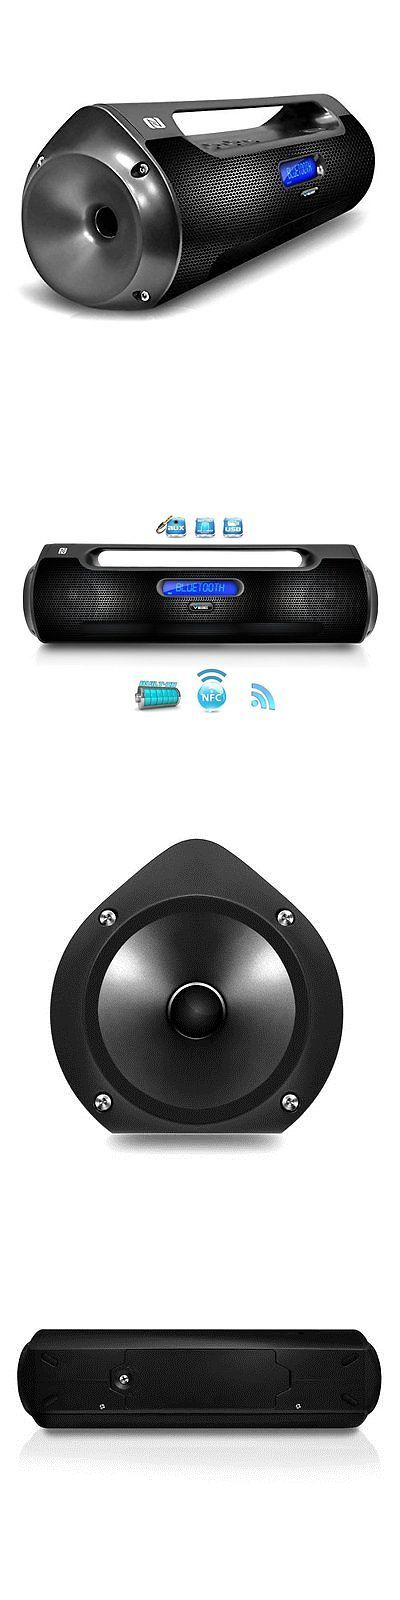 Portable Stereos Boomboxes: Bluetooth Portable Boom Box Speaker, Wireless,Usb Flash, Micro Sd, Fm Radio BUY IT NOW ONLY: $131.29